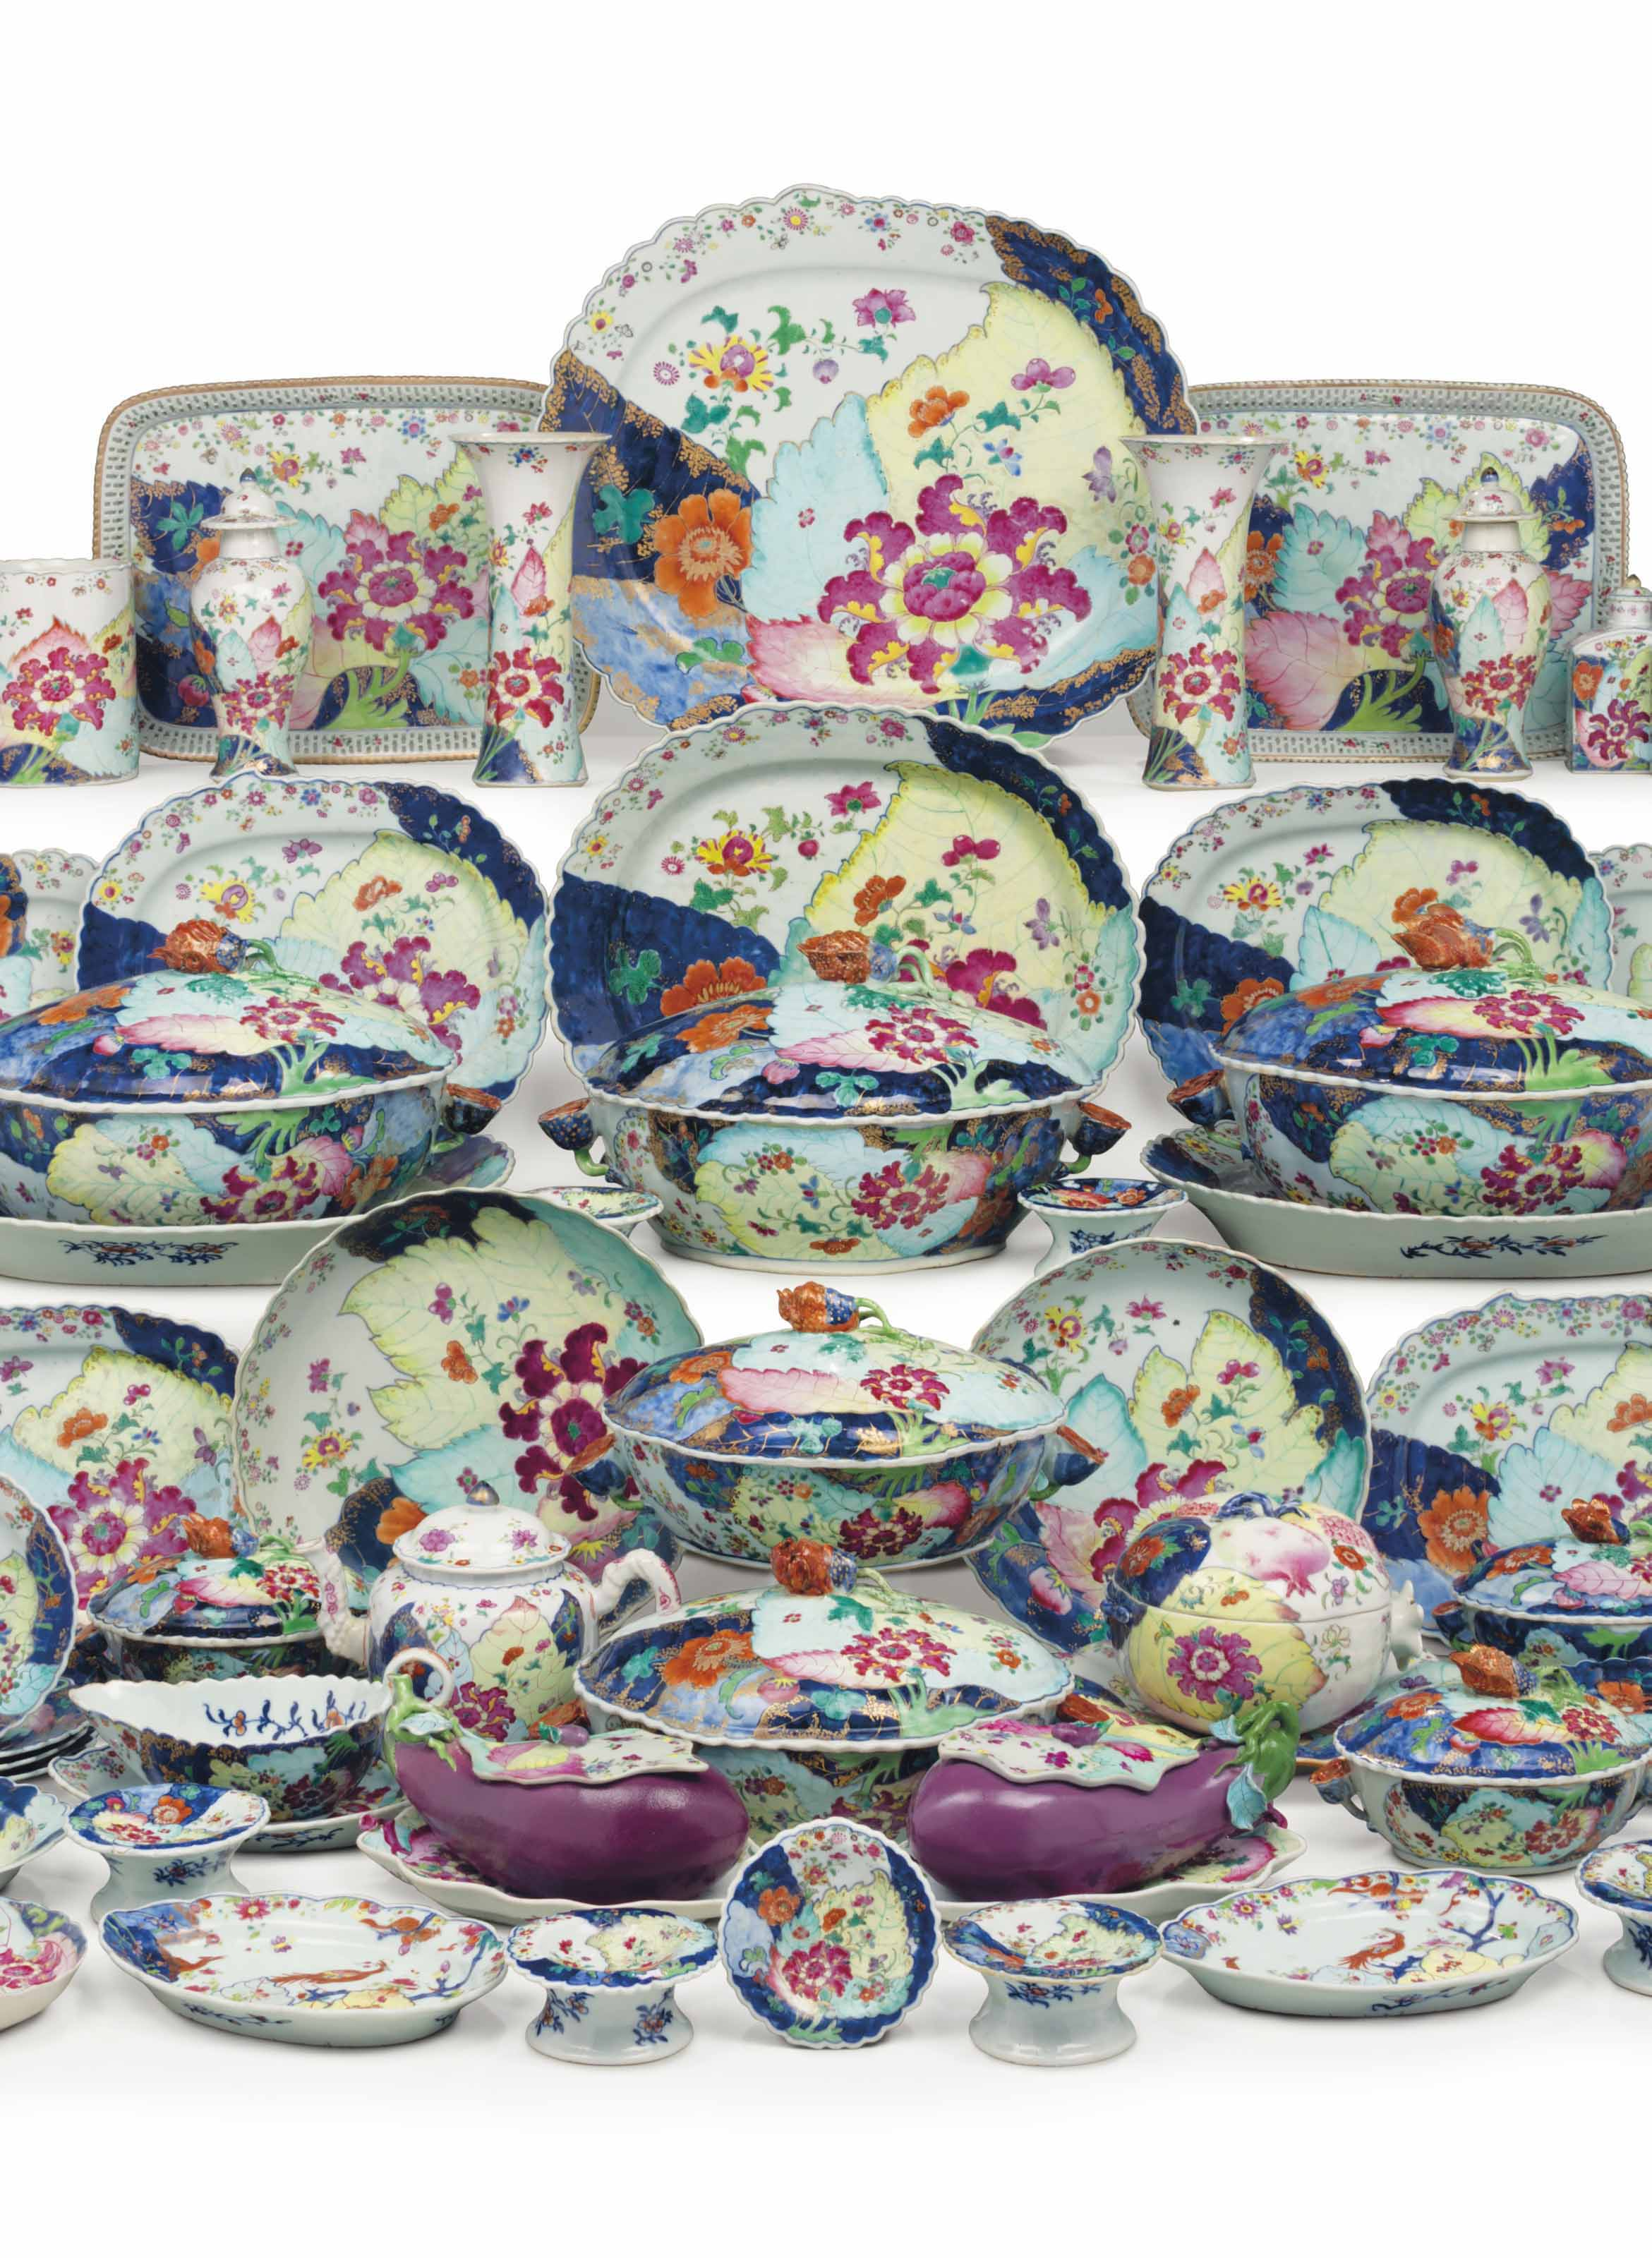 A LARGE CHINESE EXPORT 'TOBACCO LEAF' ASSEMBLED DINNER SERVICE